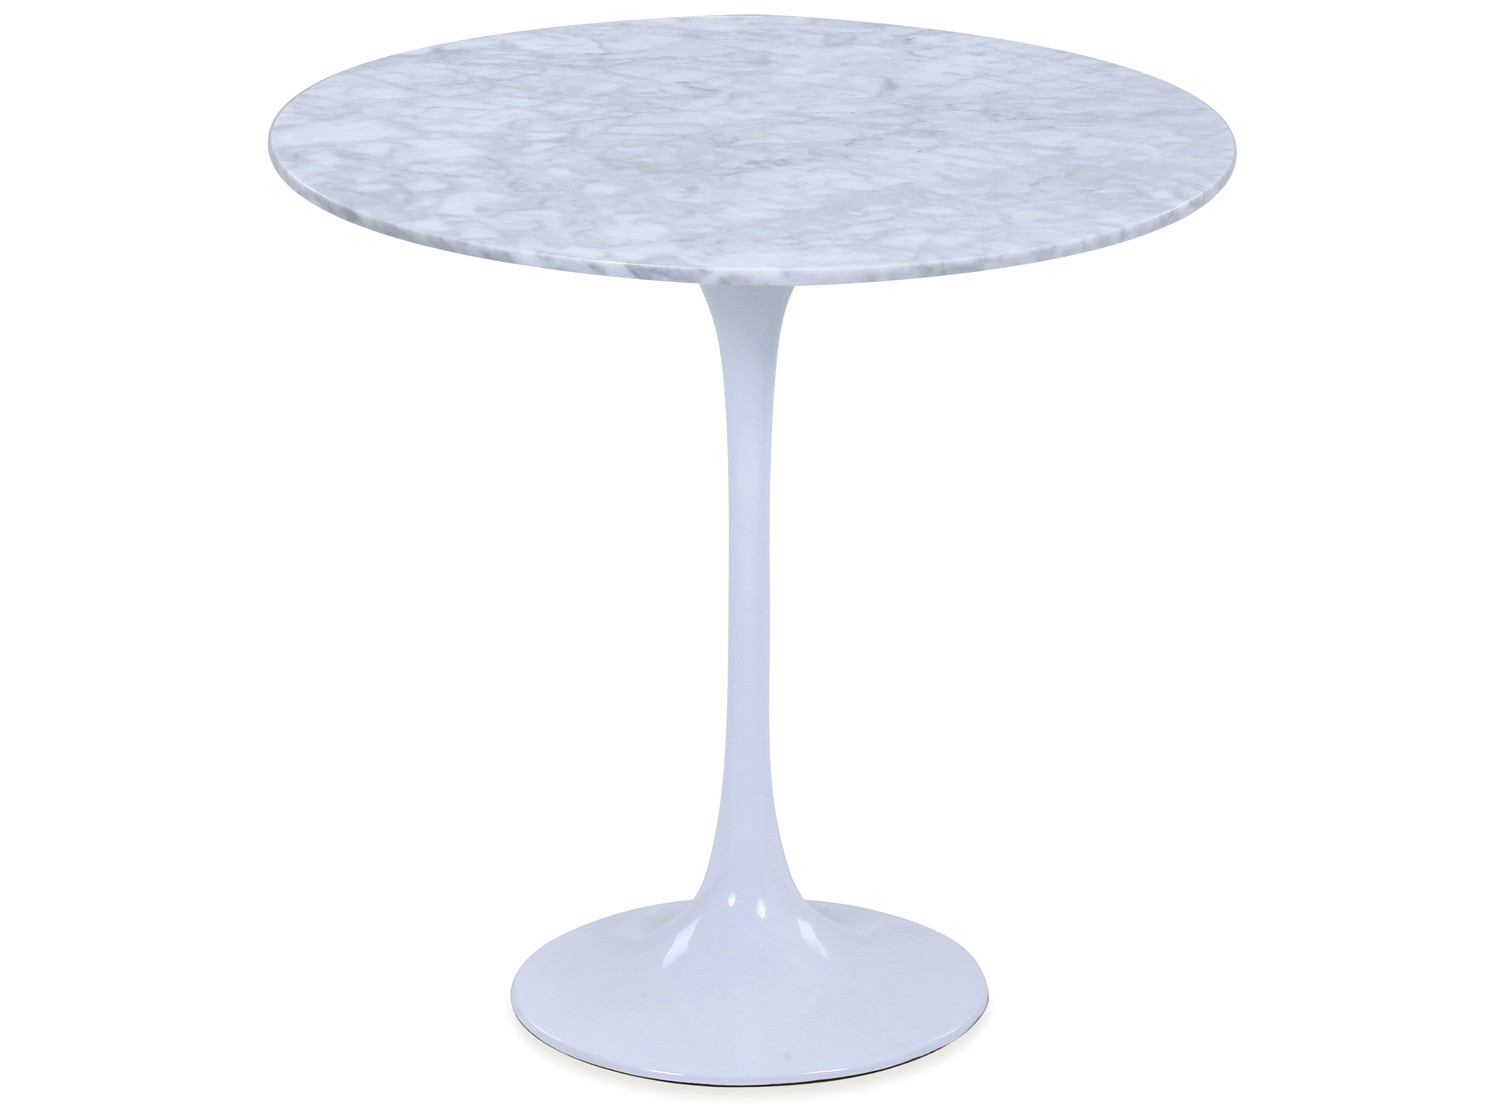 Tulip Tisch Tulip Side Table By Eero Saarinen (platinum Replica)